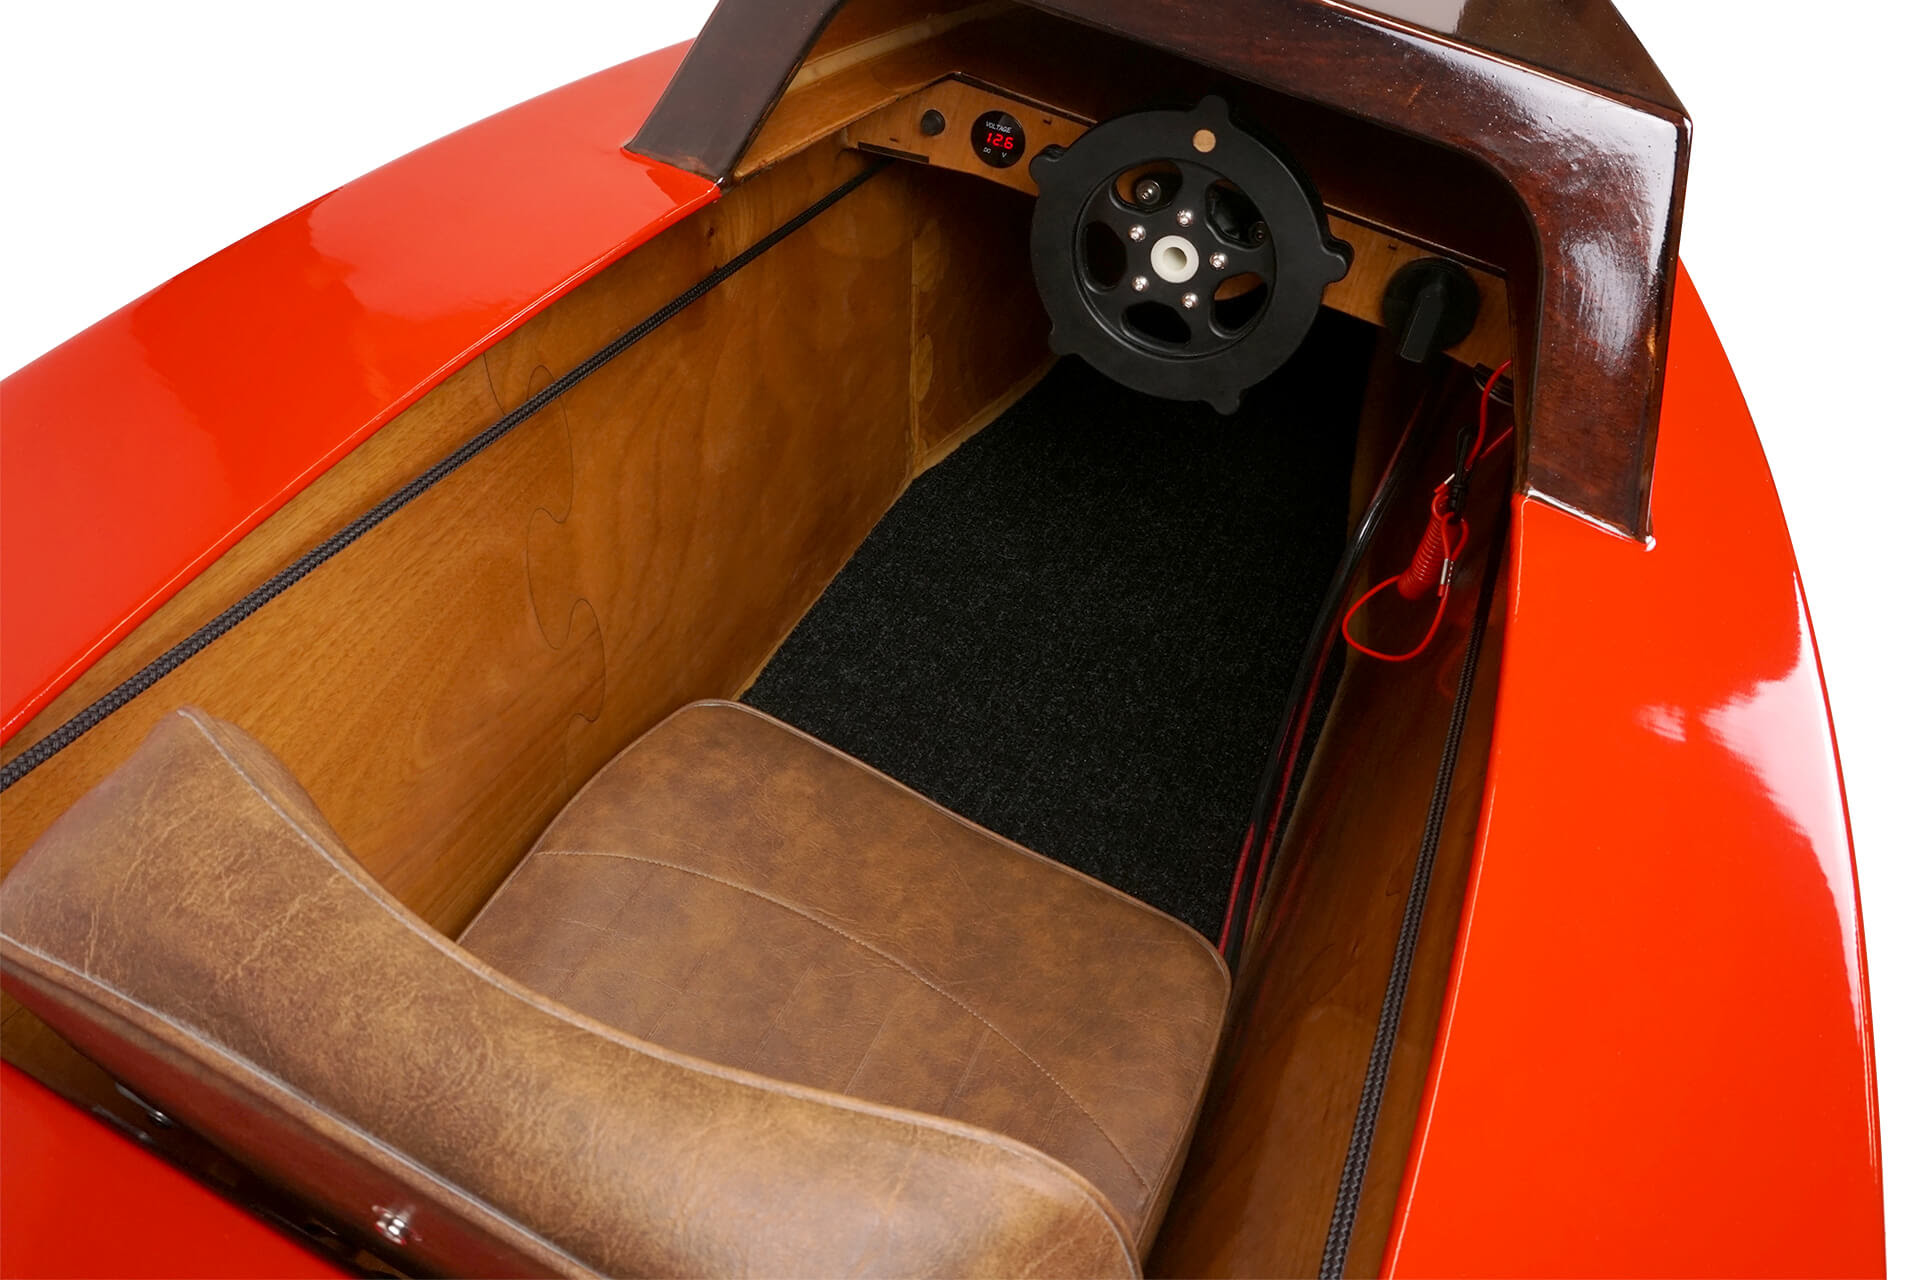 A detail view of the mini electric boat seat